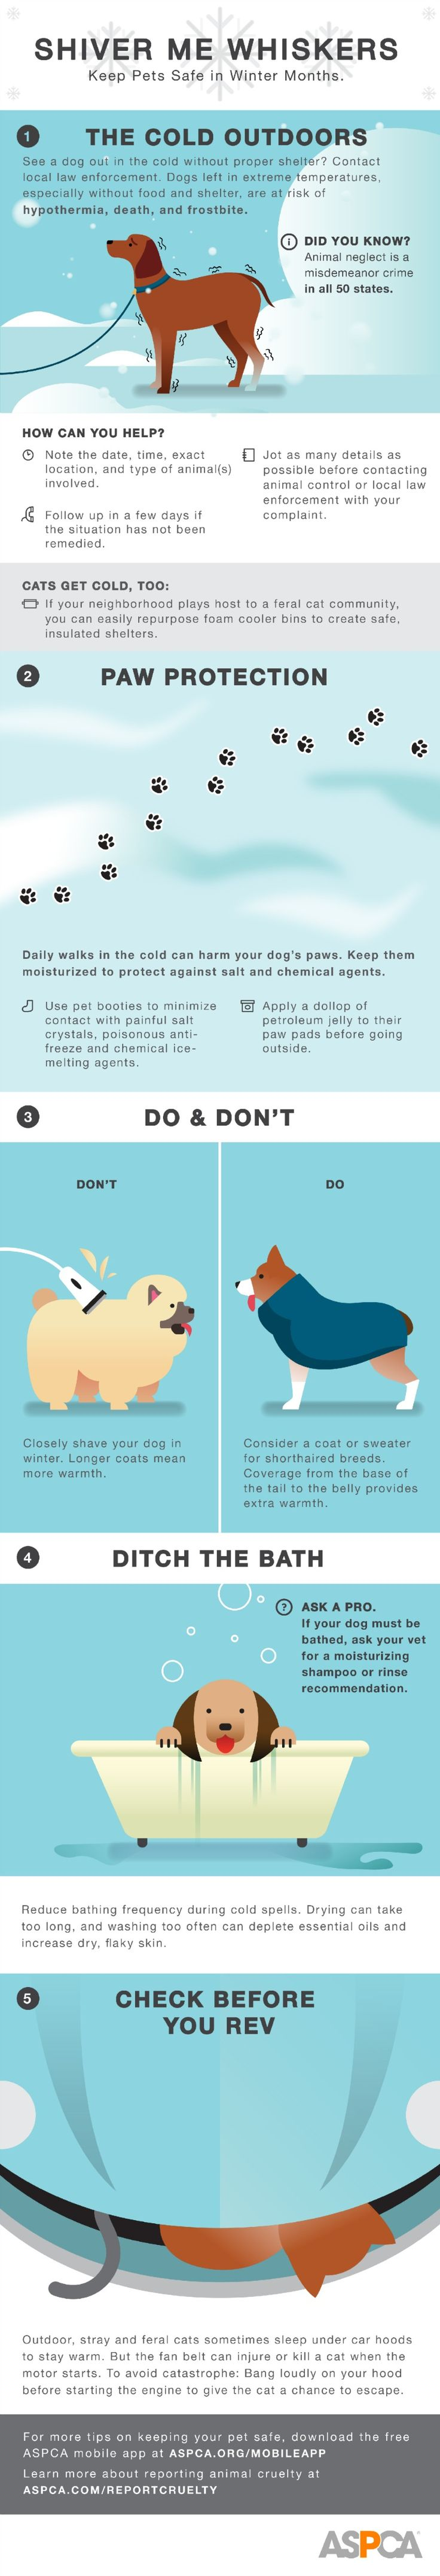 Keep your pets warm with these cold weather tips! Visit our site for an animated version: http://www.aspca.org/blog/battling-frigid-temps-and-icy-conditions-our-cold-weather-infographic-will-help